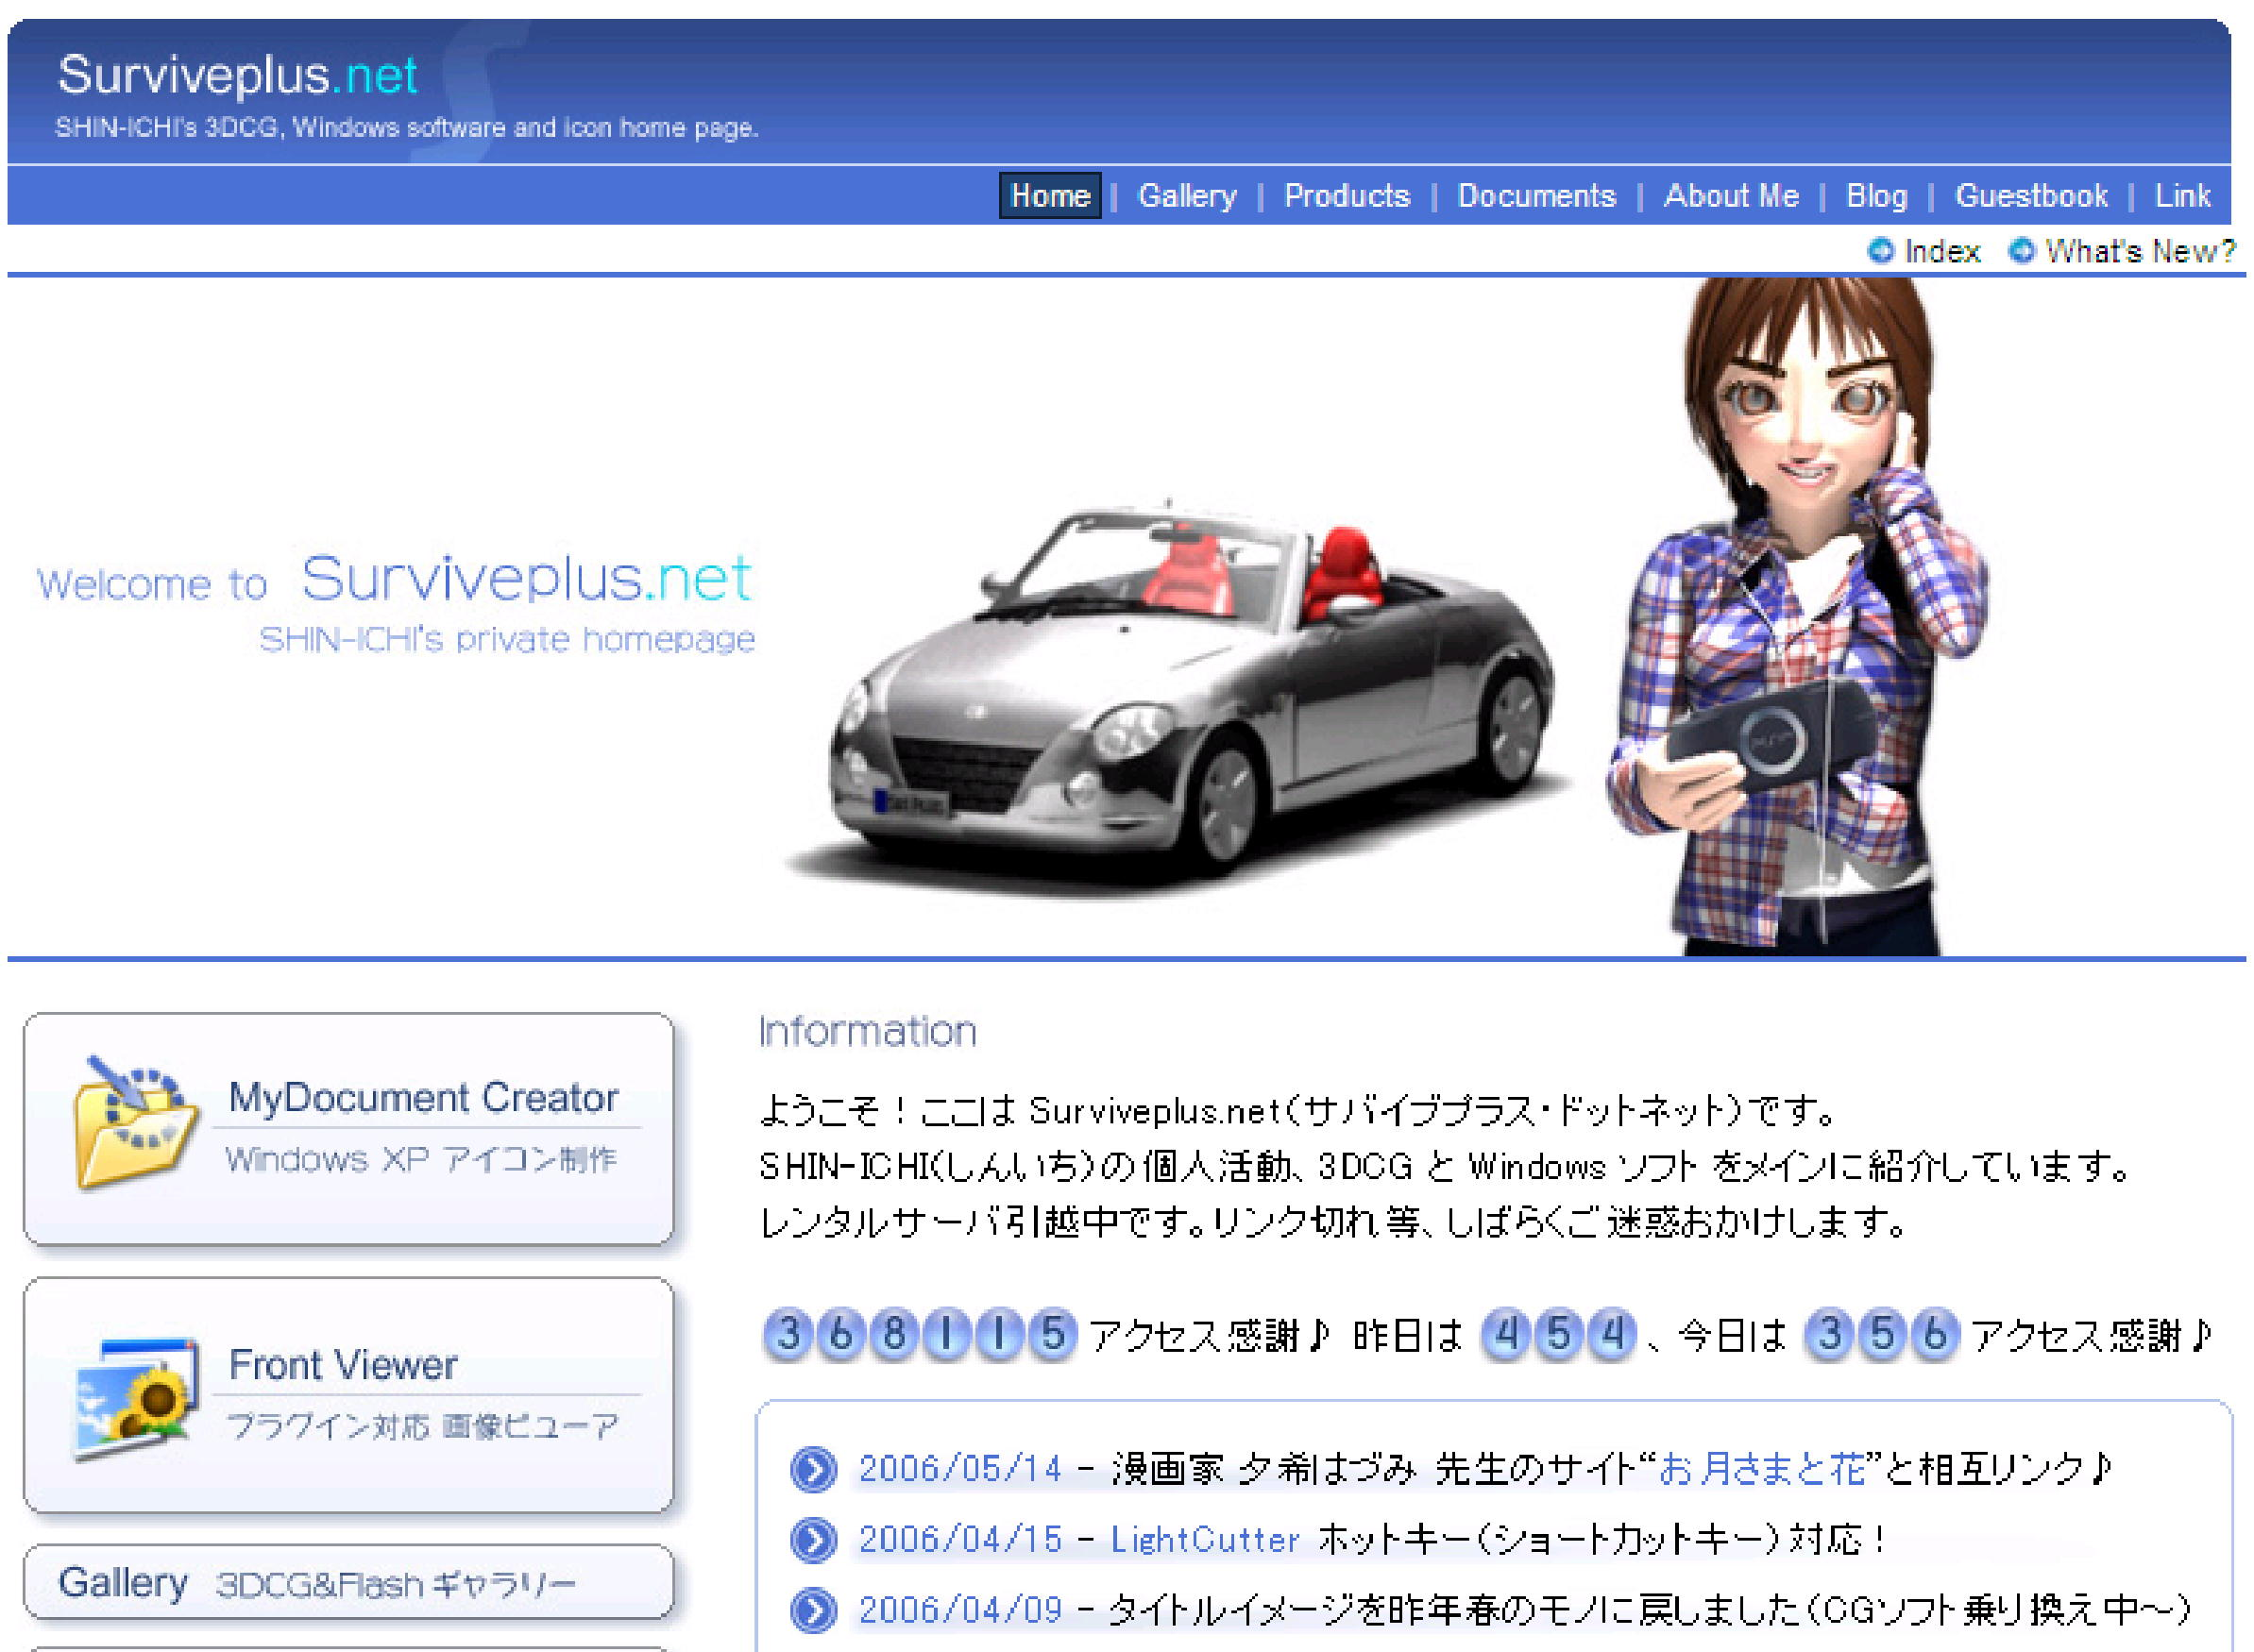 Surviveplus.net